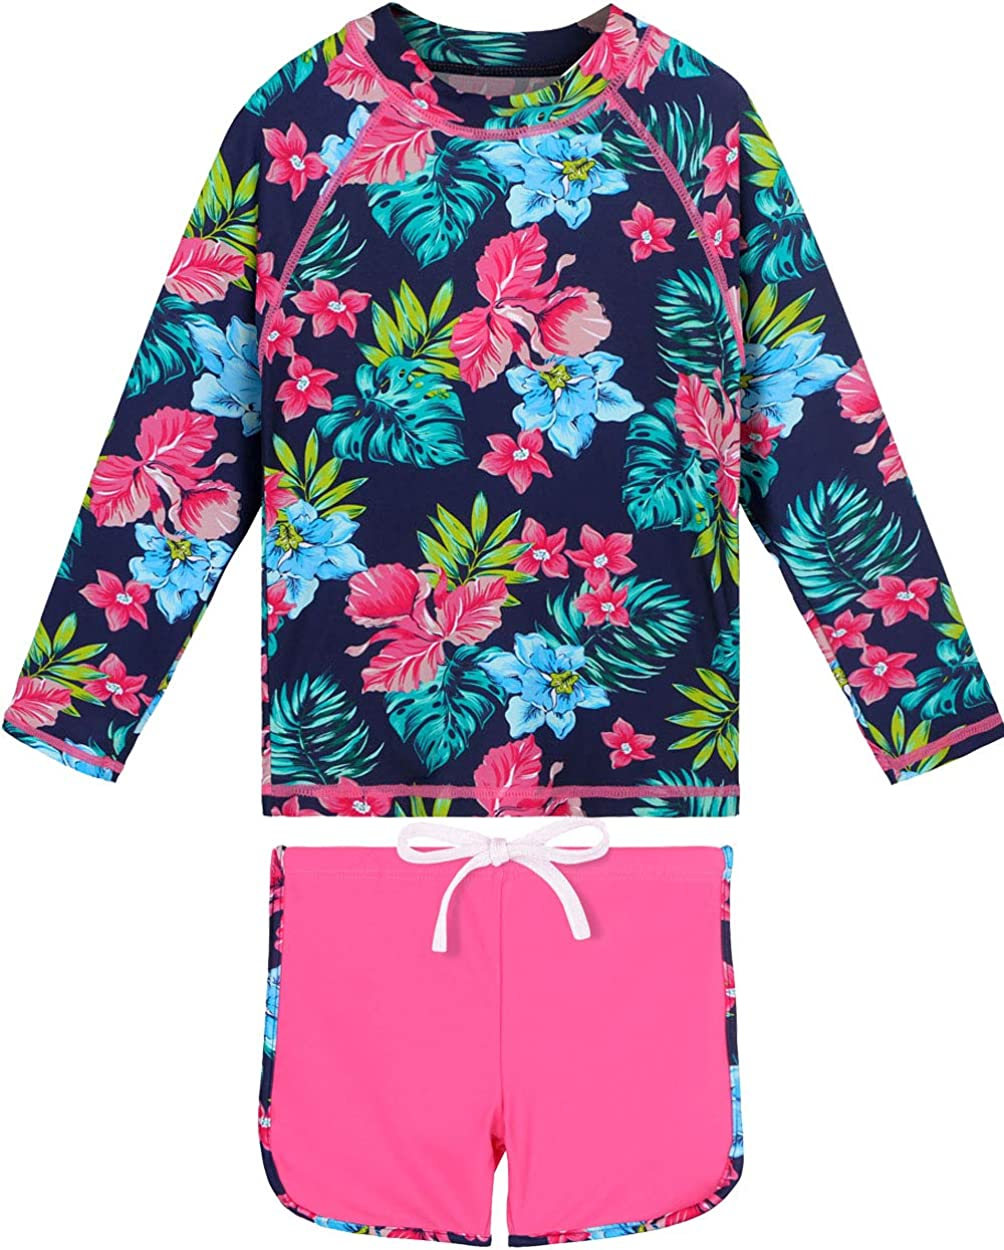 Girls Rash Guard Seattle Mall Don't miss the campaign Long Sleeve Swimsuit Piece Two Prot UPF 50+ Sun